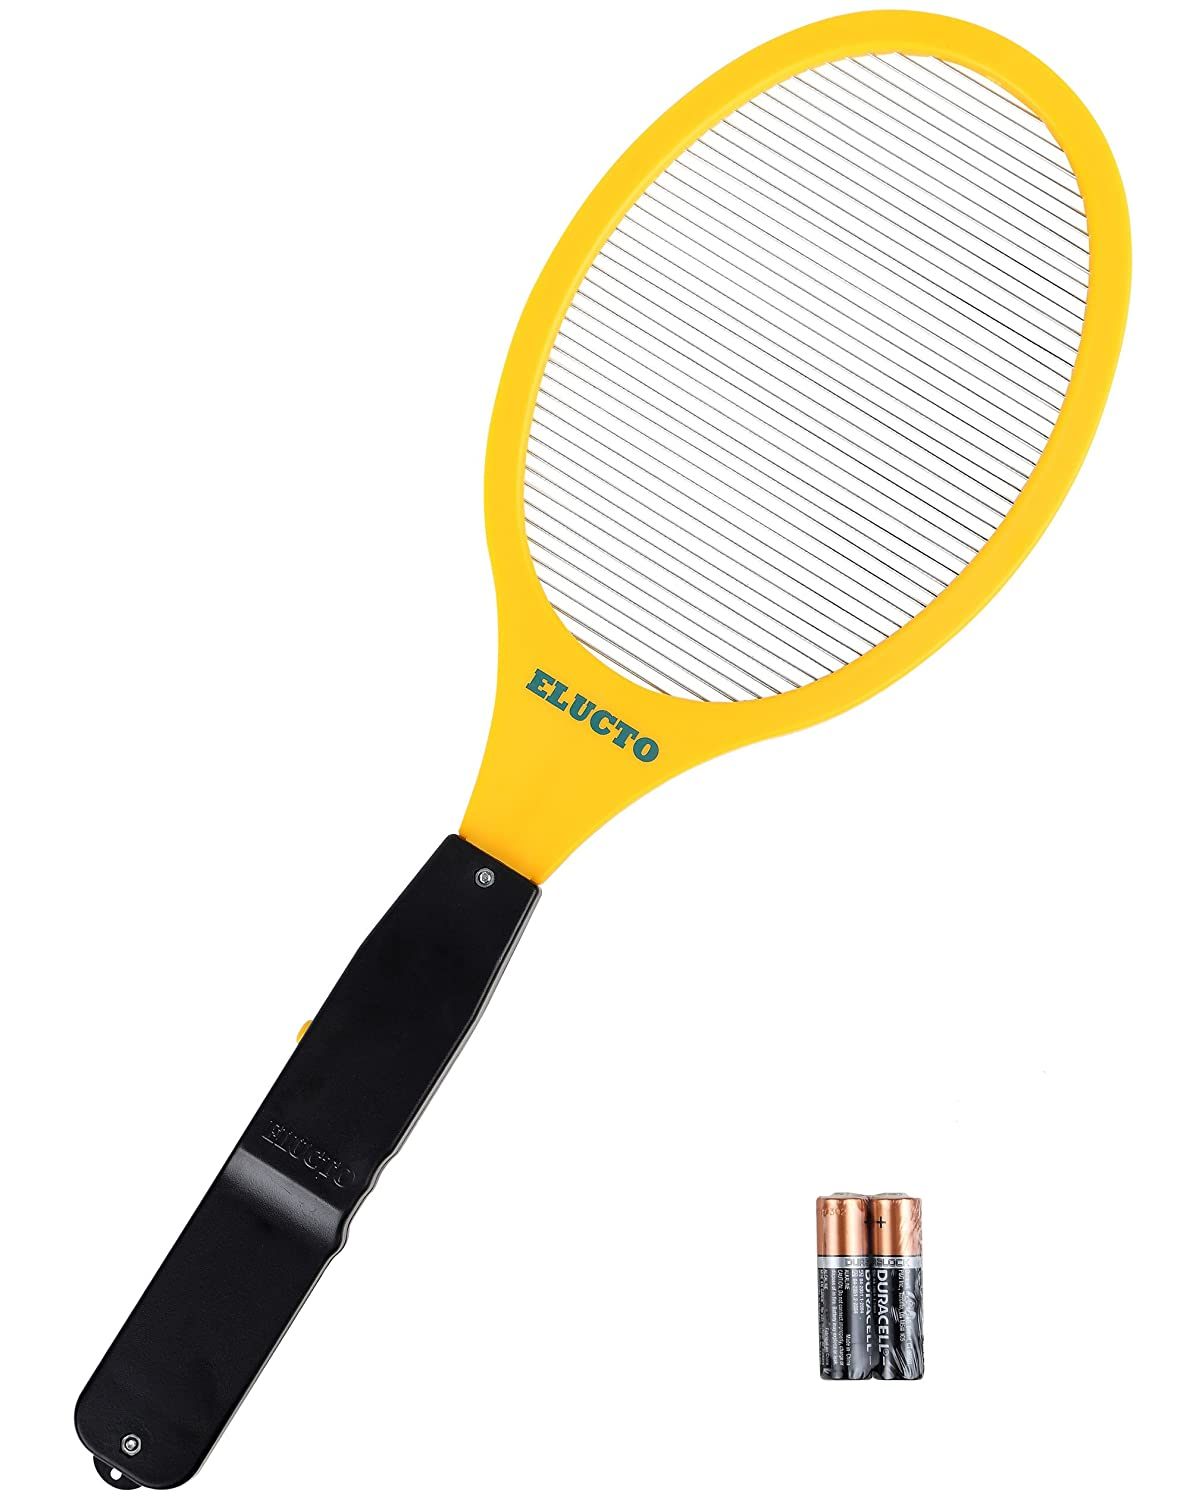 Fly Swatter Zap Mosquito